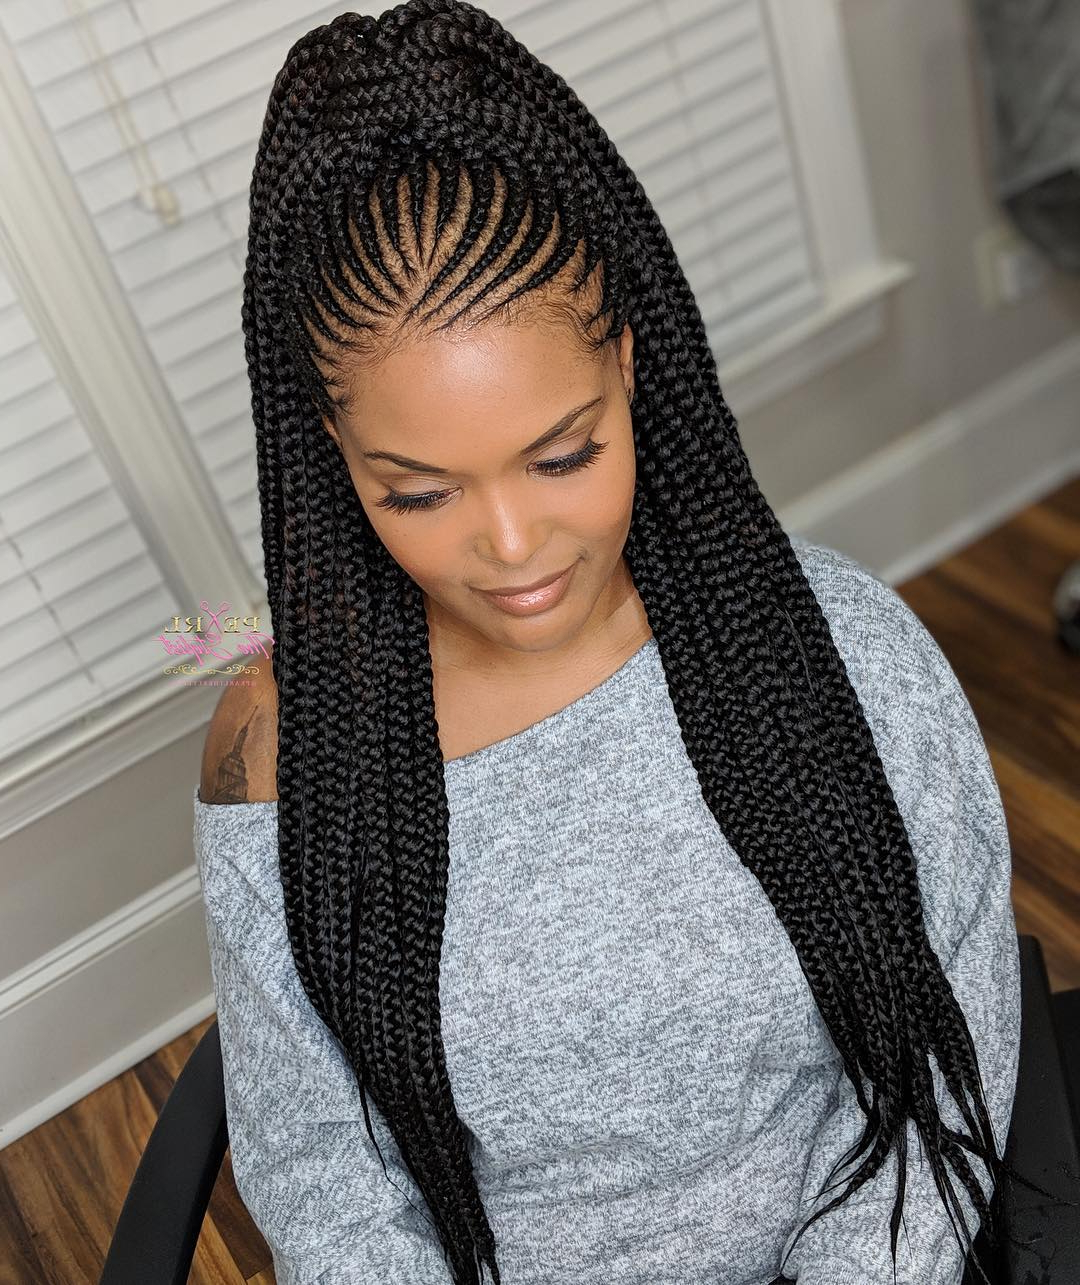 45 Pretty Braided Hairstyles For 2021 Looking Absolutely For Latest Chic Black Braided High Ponytail Hairstyles (View 9 of 20)